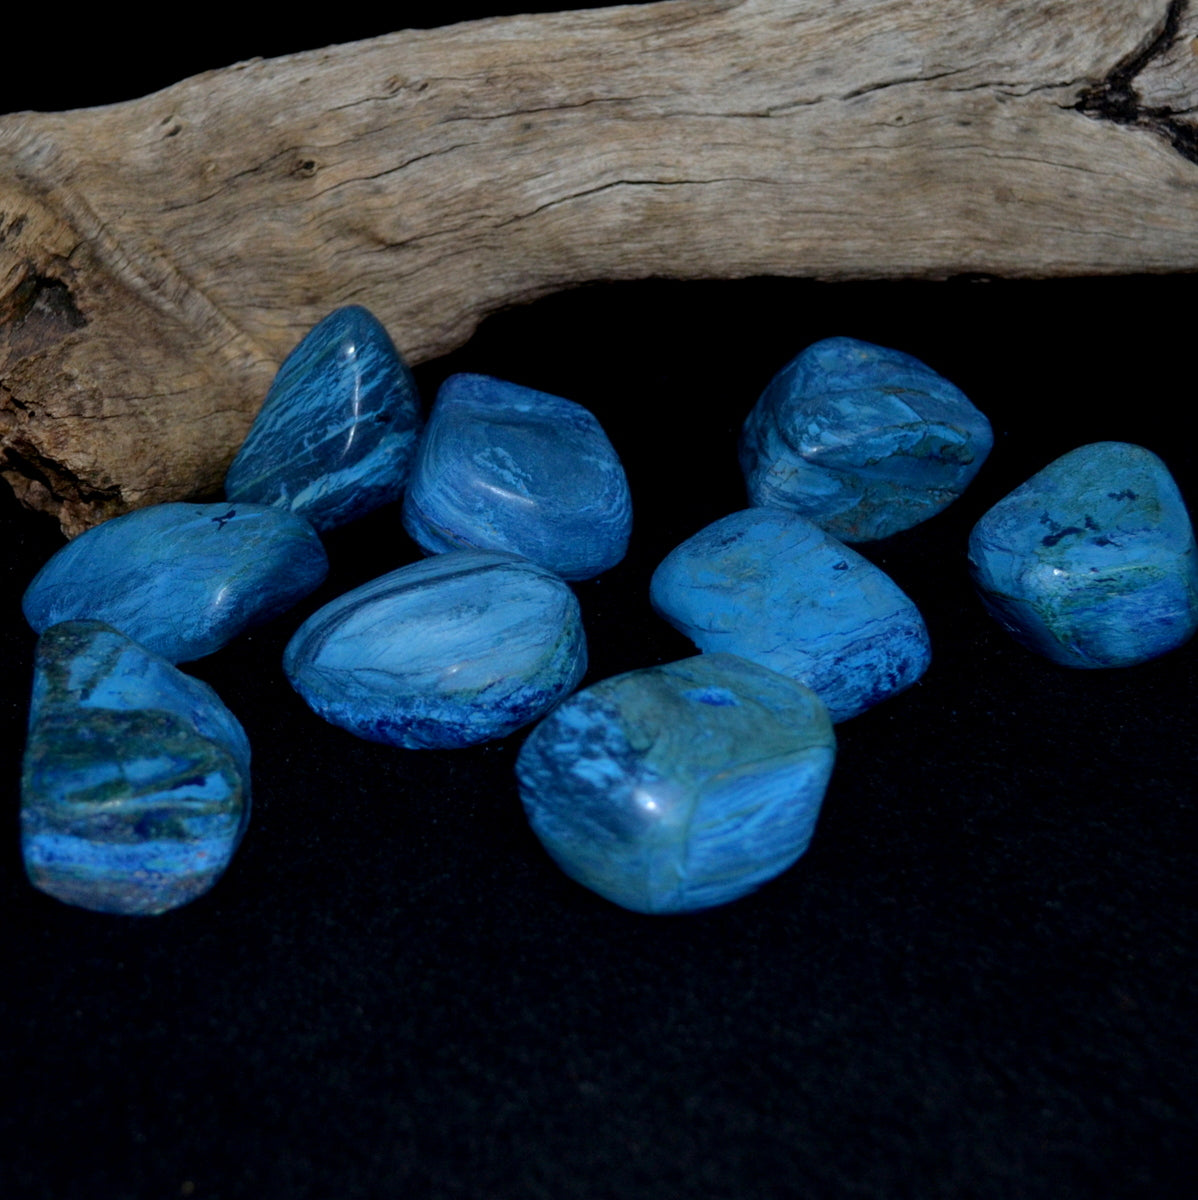 Azurite Hand Polished Freeform - Focus Intuition Connection - Shop now at Illiom Crystals - Afterpay Available